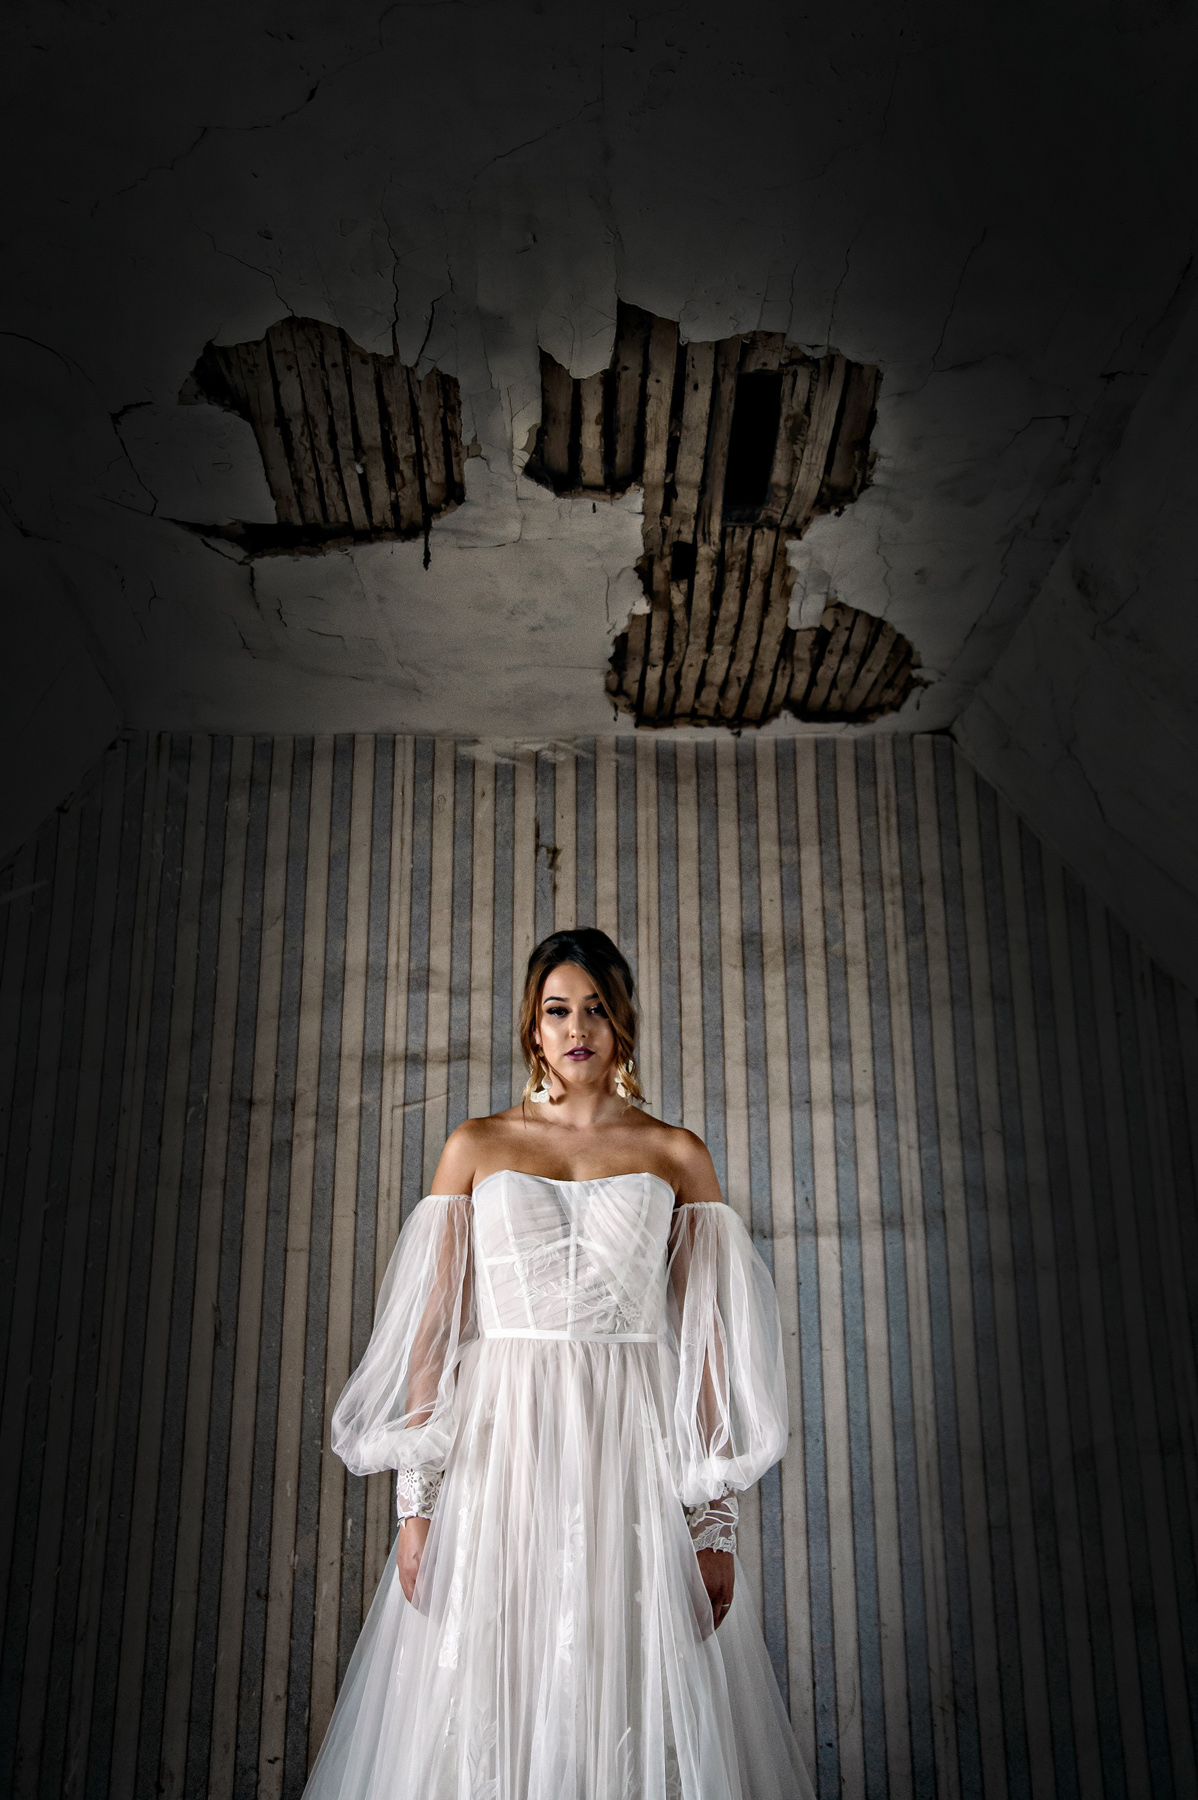 Watters Fross Wedding Collections  - Fross Wedding Collections Bridal Boutique, Uckfield, Sussex: Modern, Glamorous, Statement Wedding Dresses